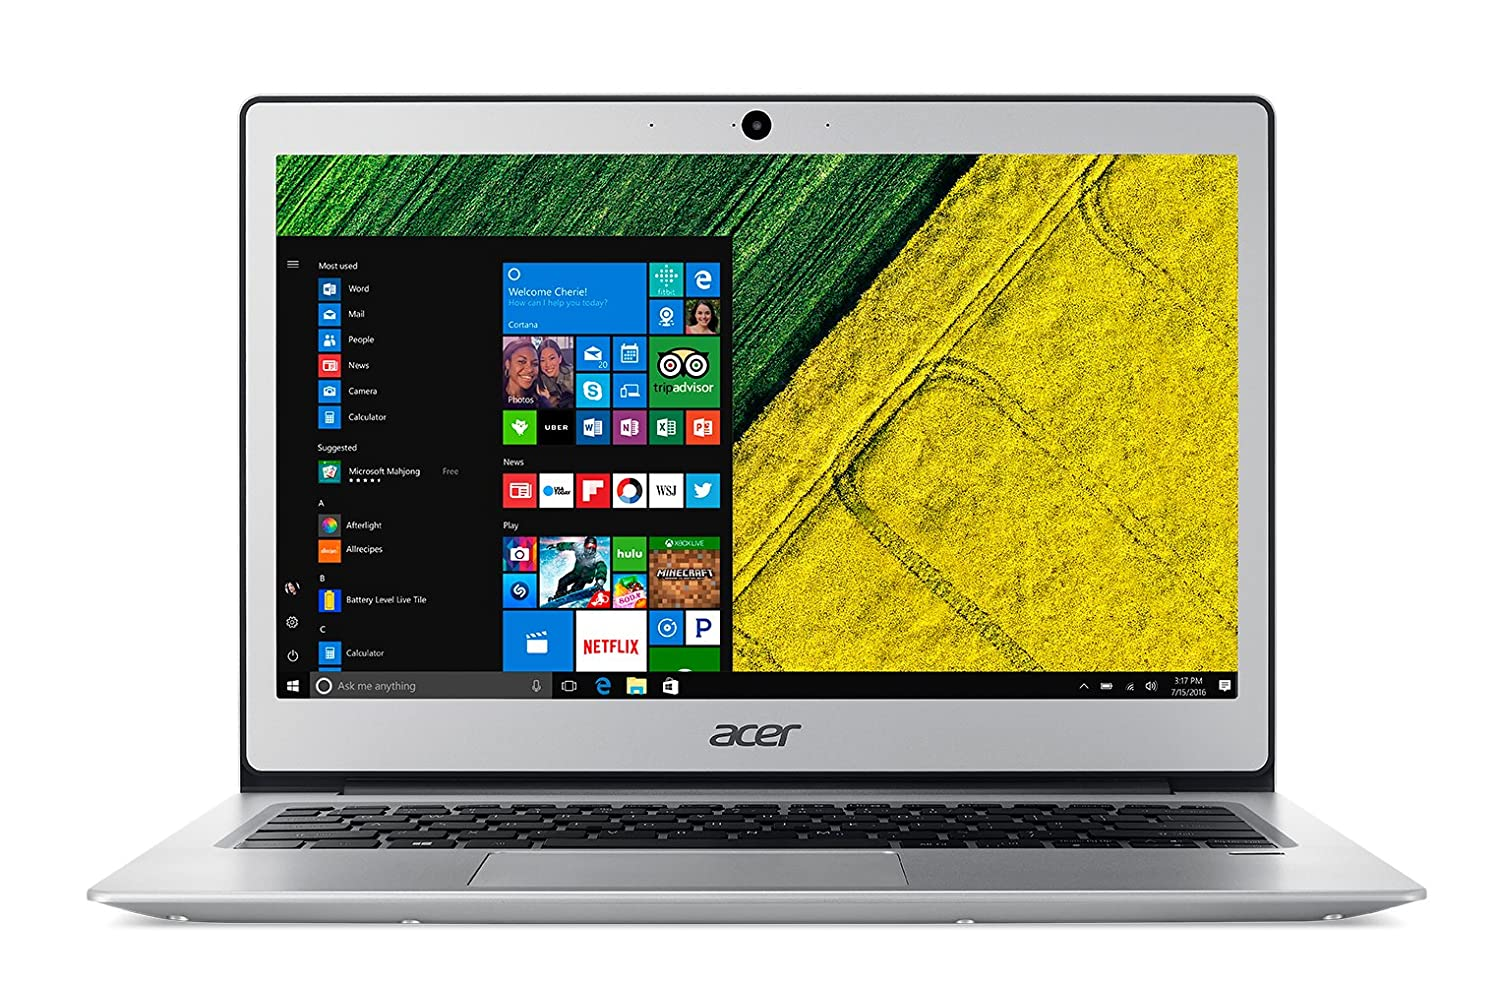 $398 (was $439.99) Acer Swift 1 13.3″ FHD Laptop, 4GB DDR3L, 64GB Flash Drive, Windows 10 Home, French Bilingual Keyboard